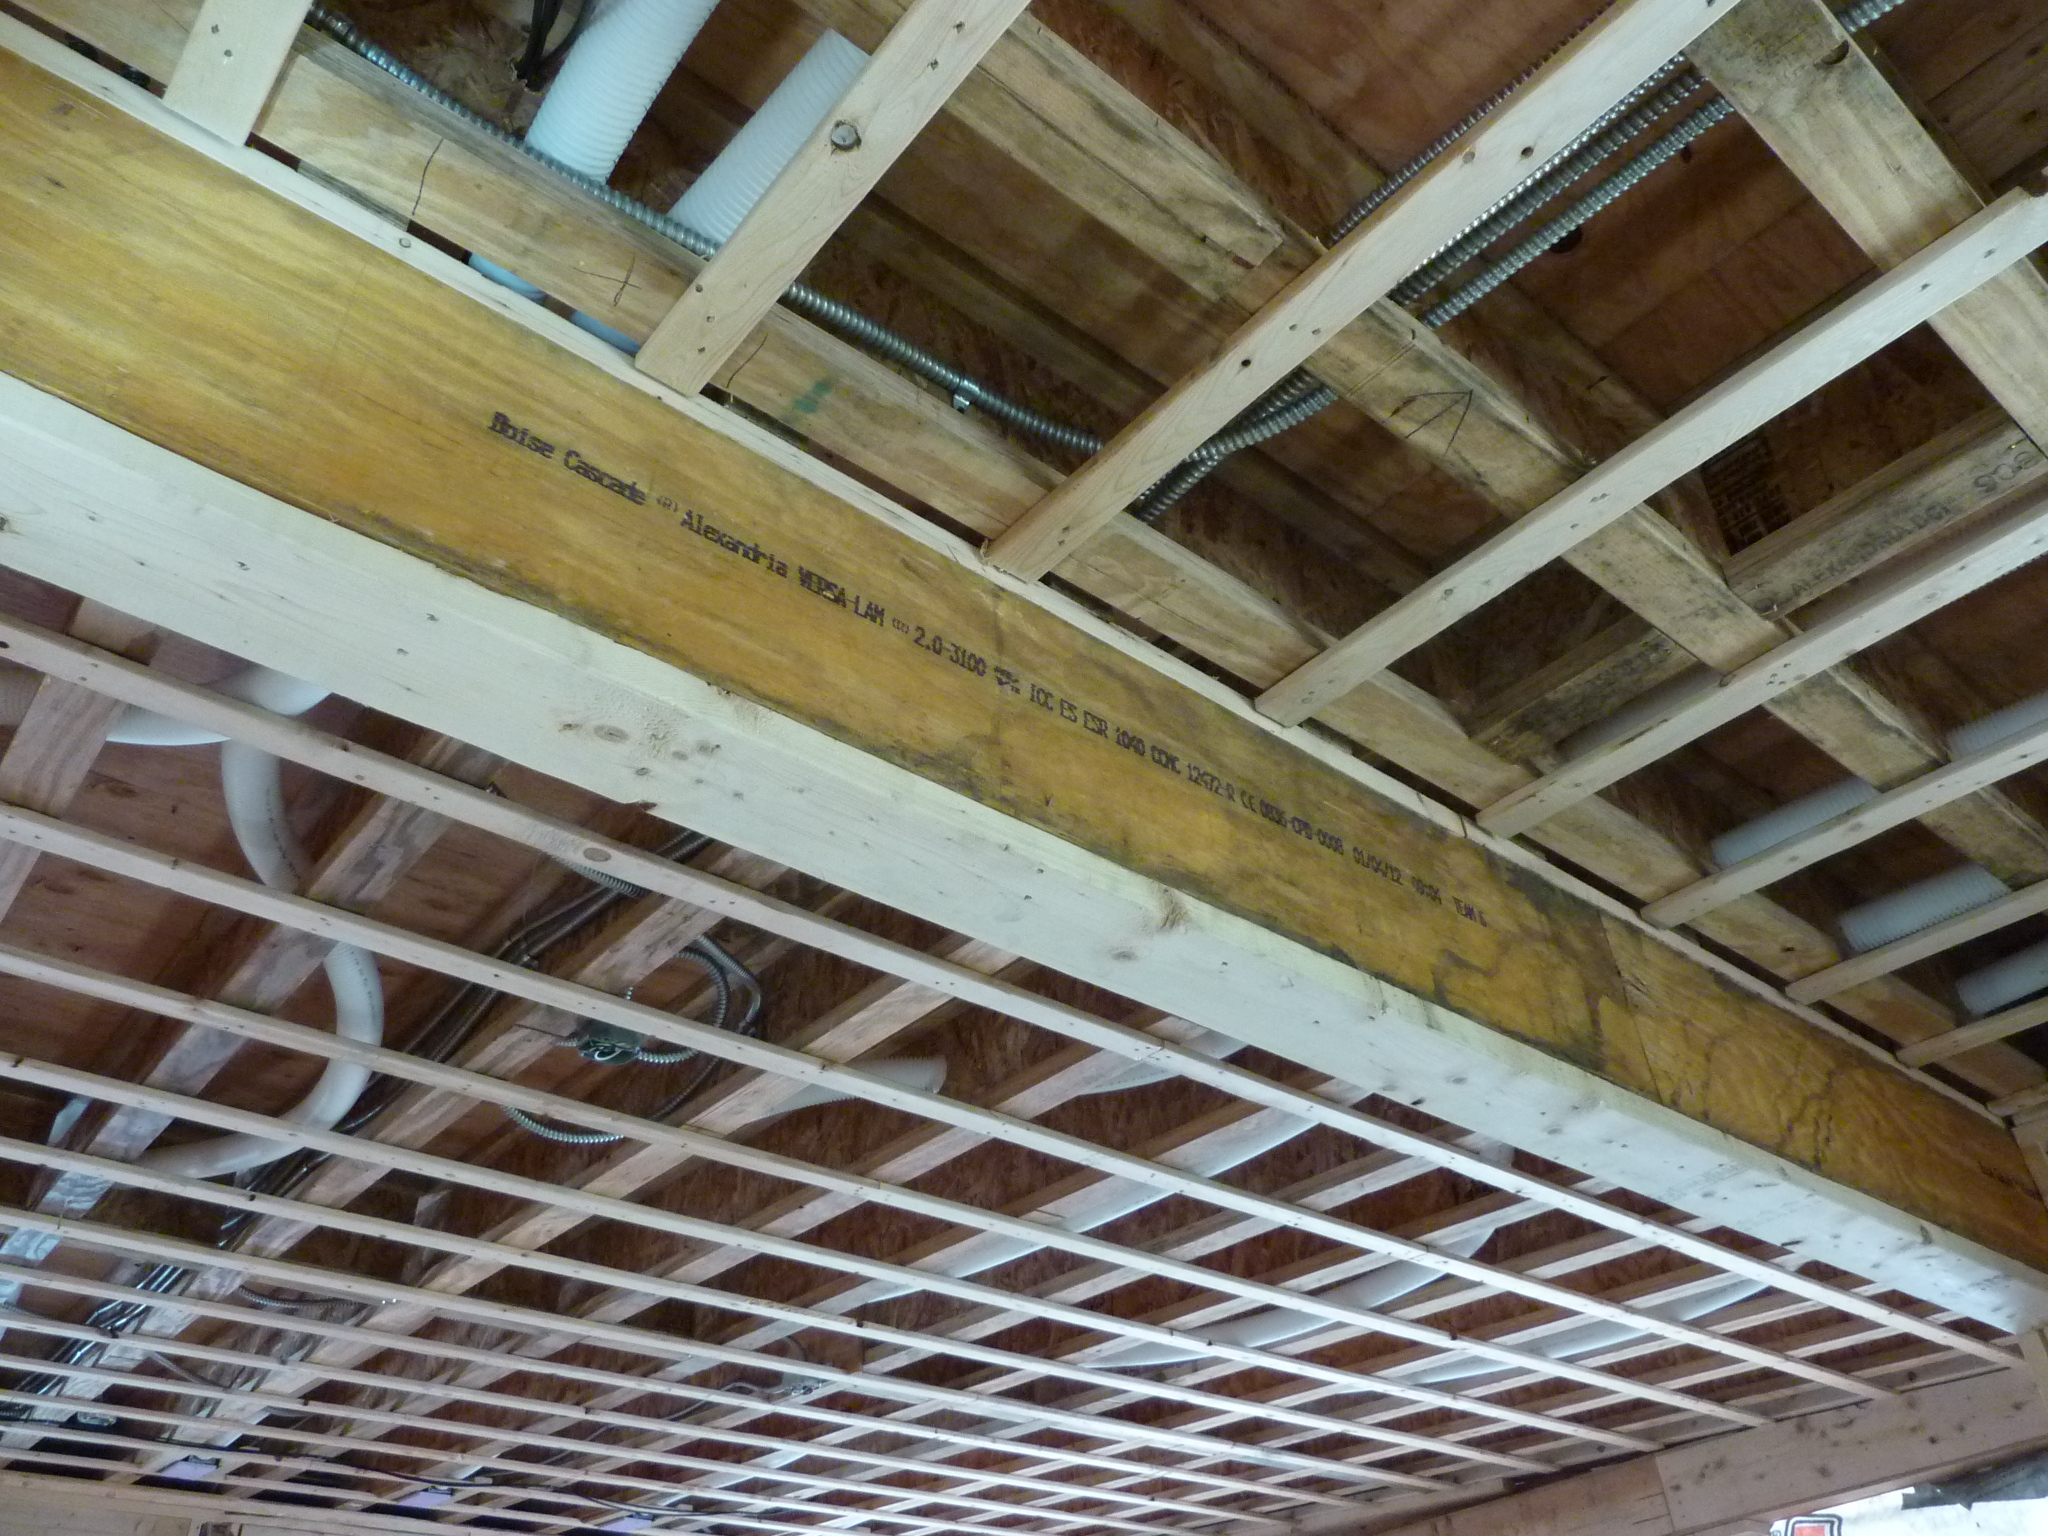 Donated LVL (laminated veneer lumber) beam in its new home